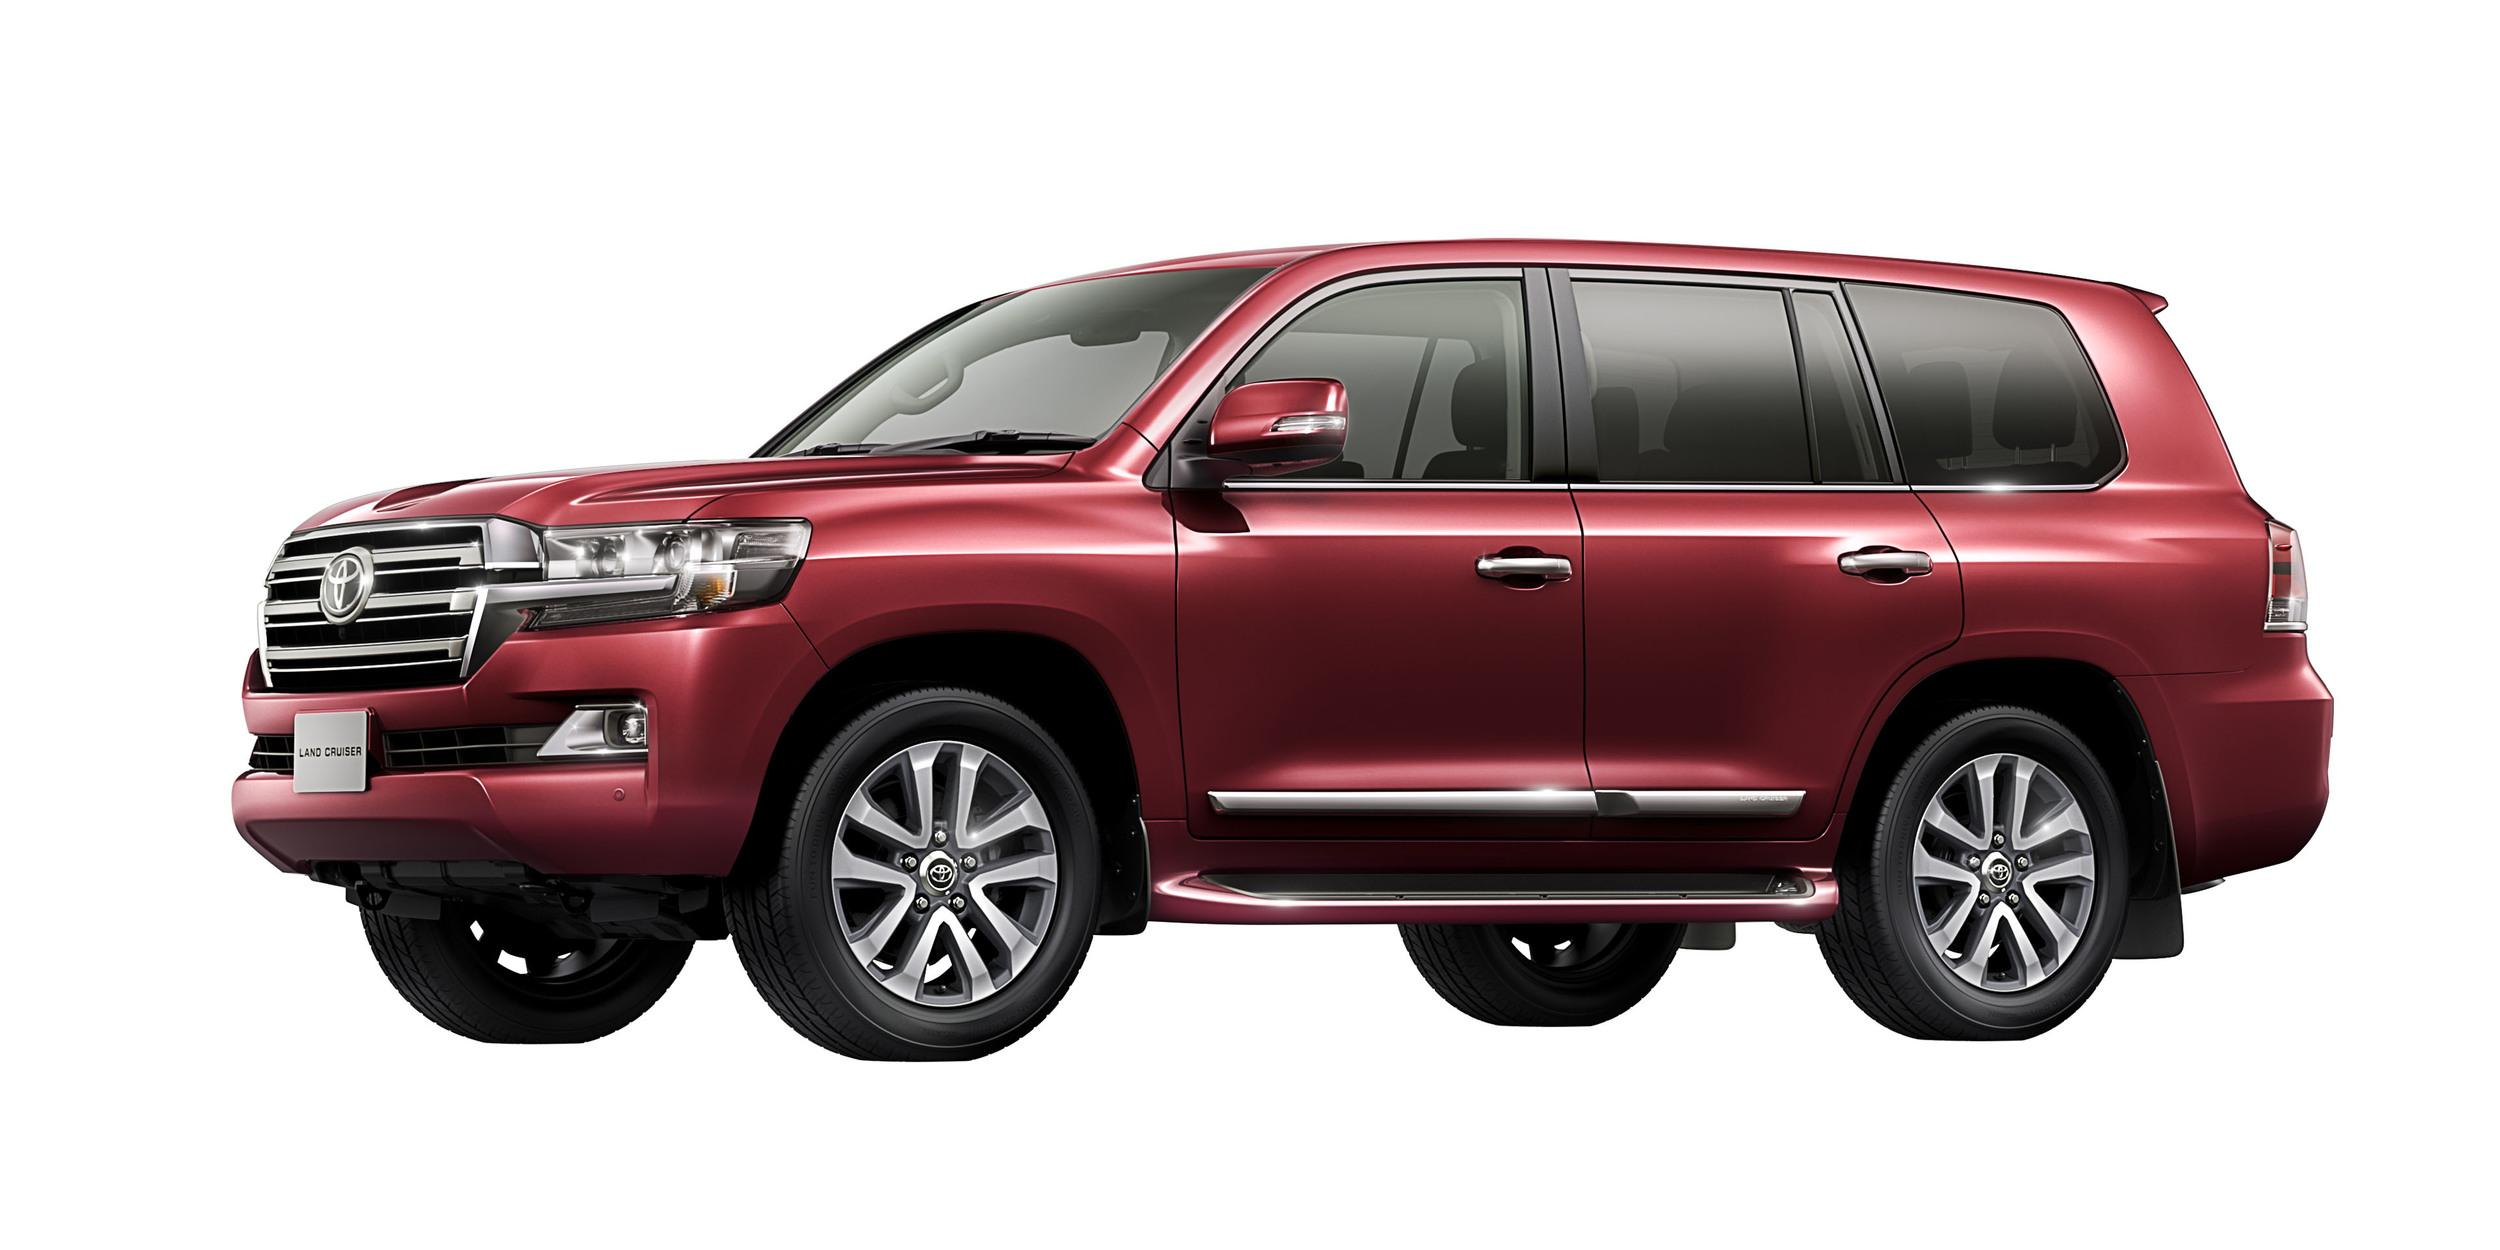 Facelifted 2016 Toyota Land Cruiser Announced | YouWheel ...